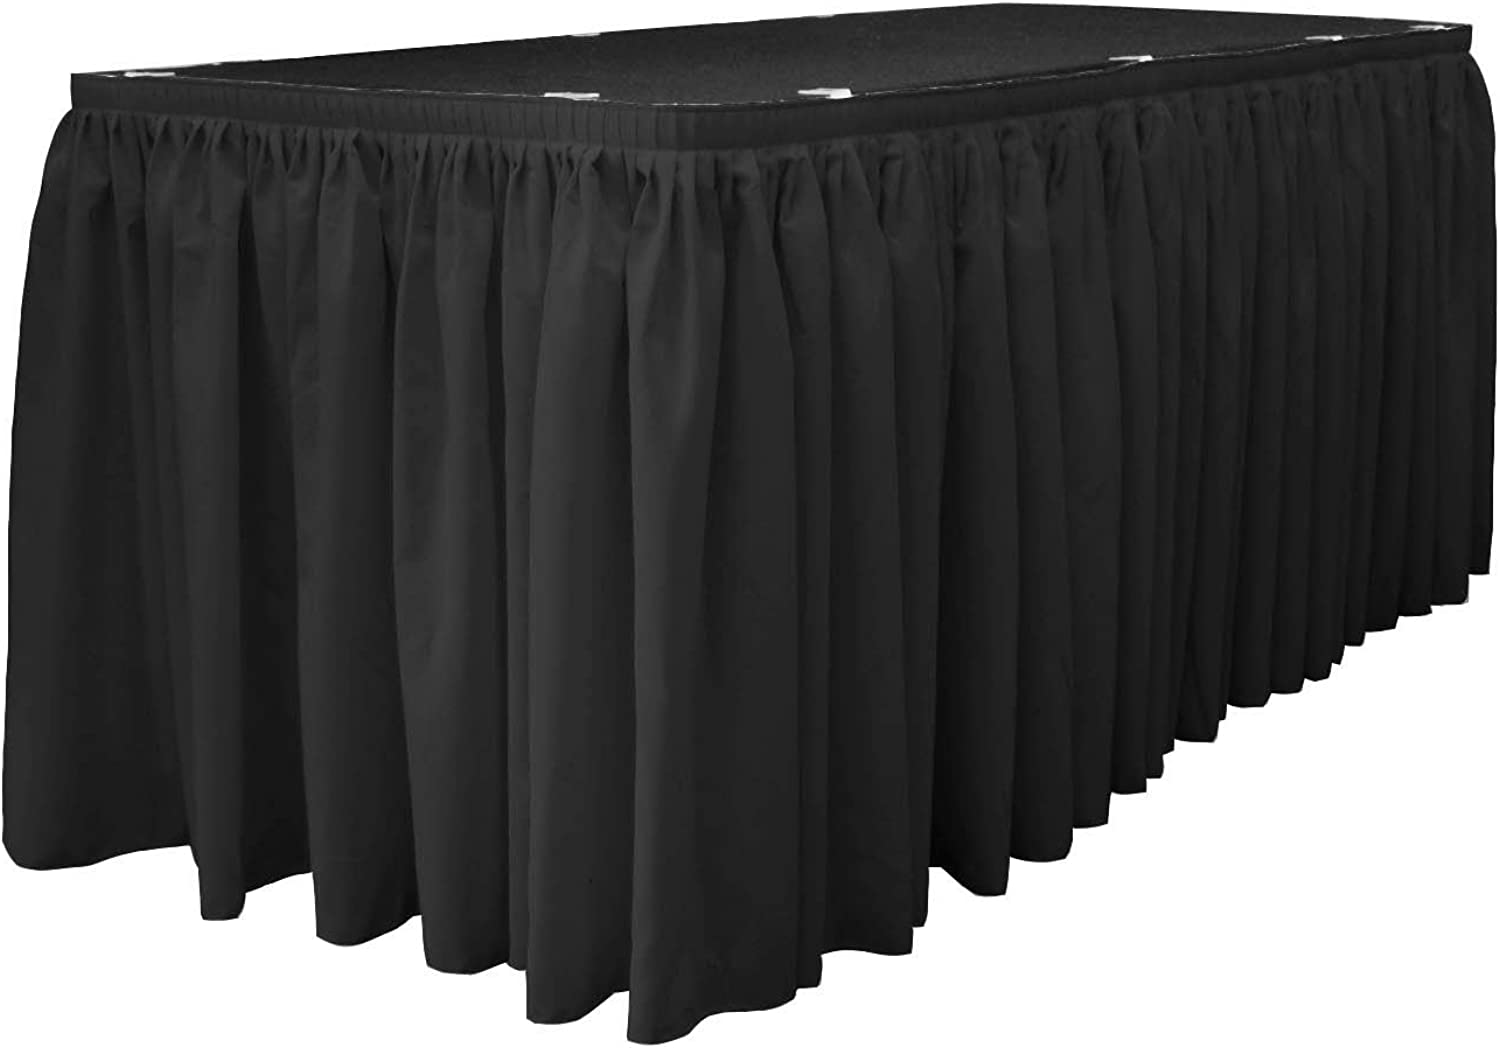 LA Linen Oversized Polyester Poplin Table Skirt 30-Foot by 29-Inch Long with 15 L-Clips, Black